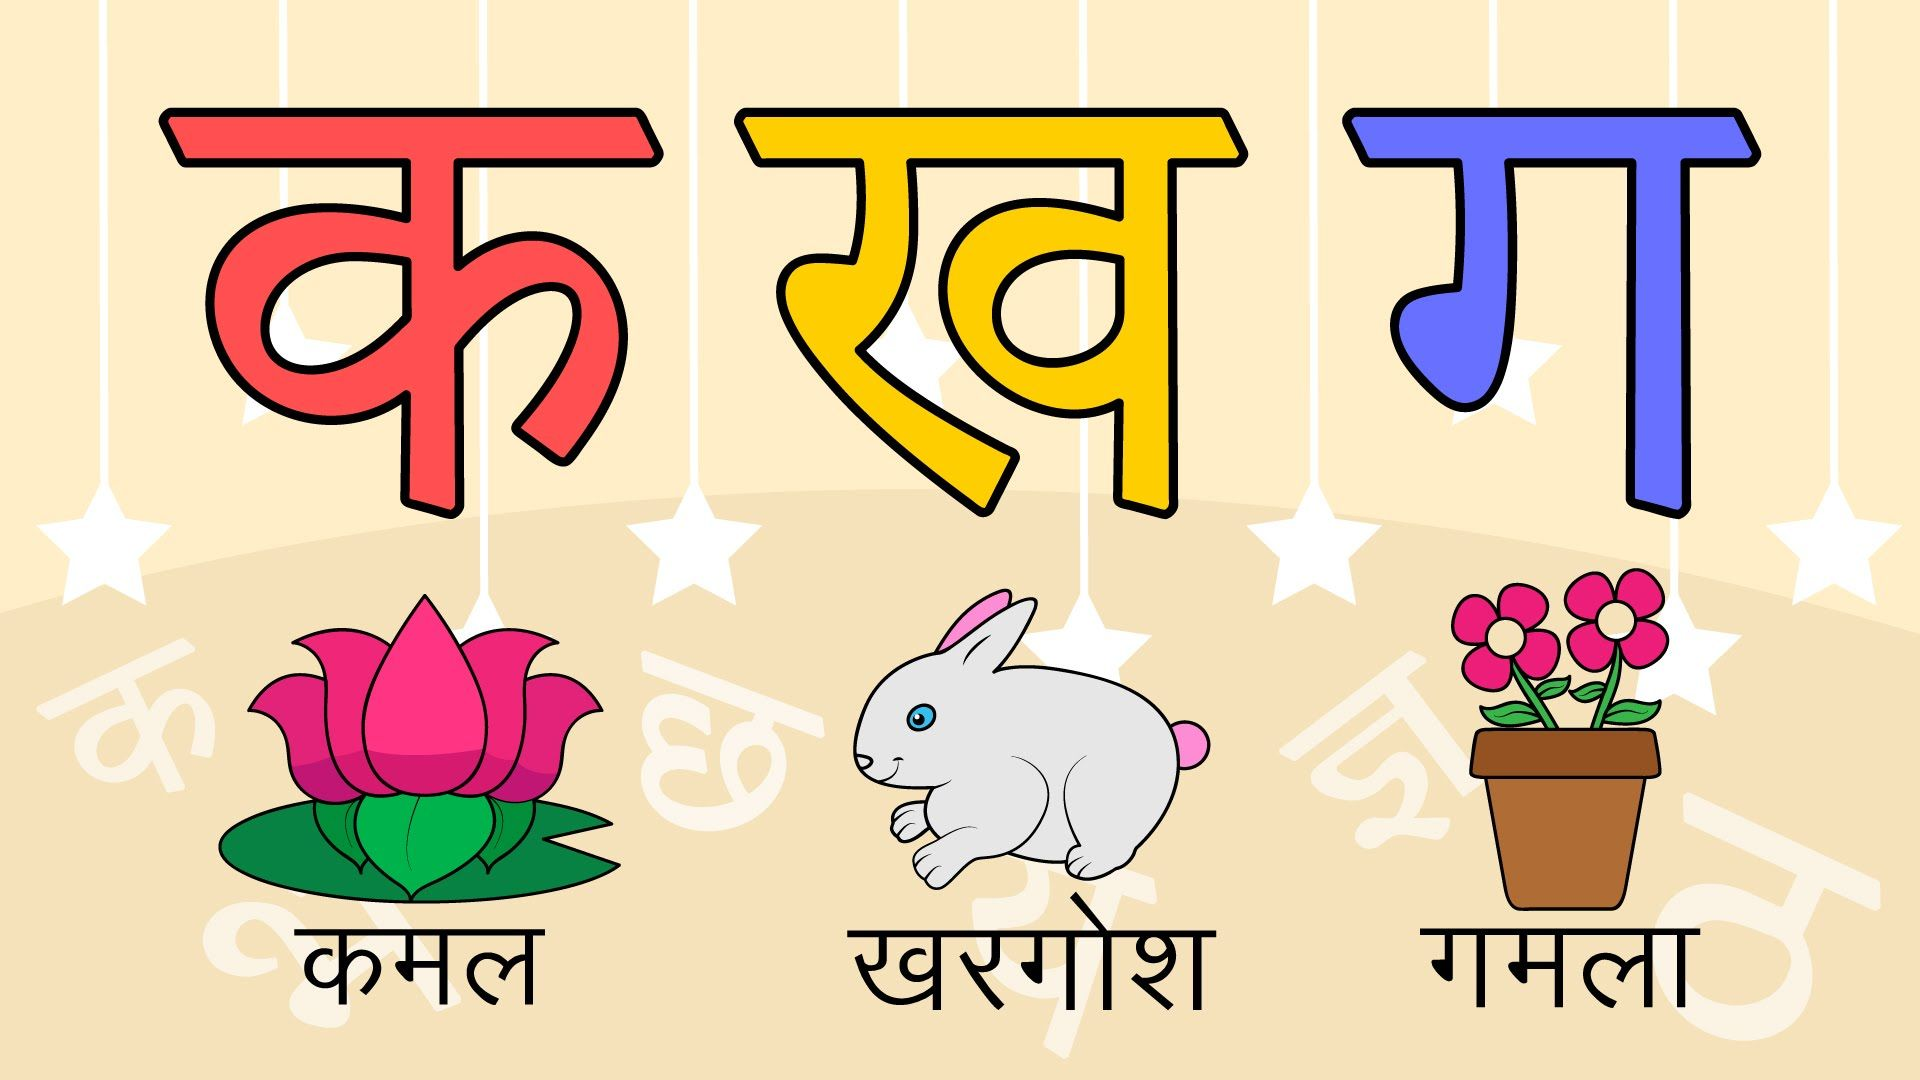 Learn 36 Hindi Varnamala letters with pictures | Kid crafts | Pinterest